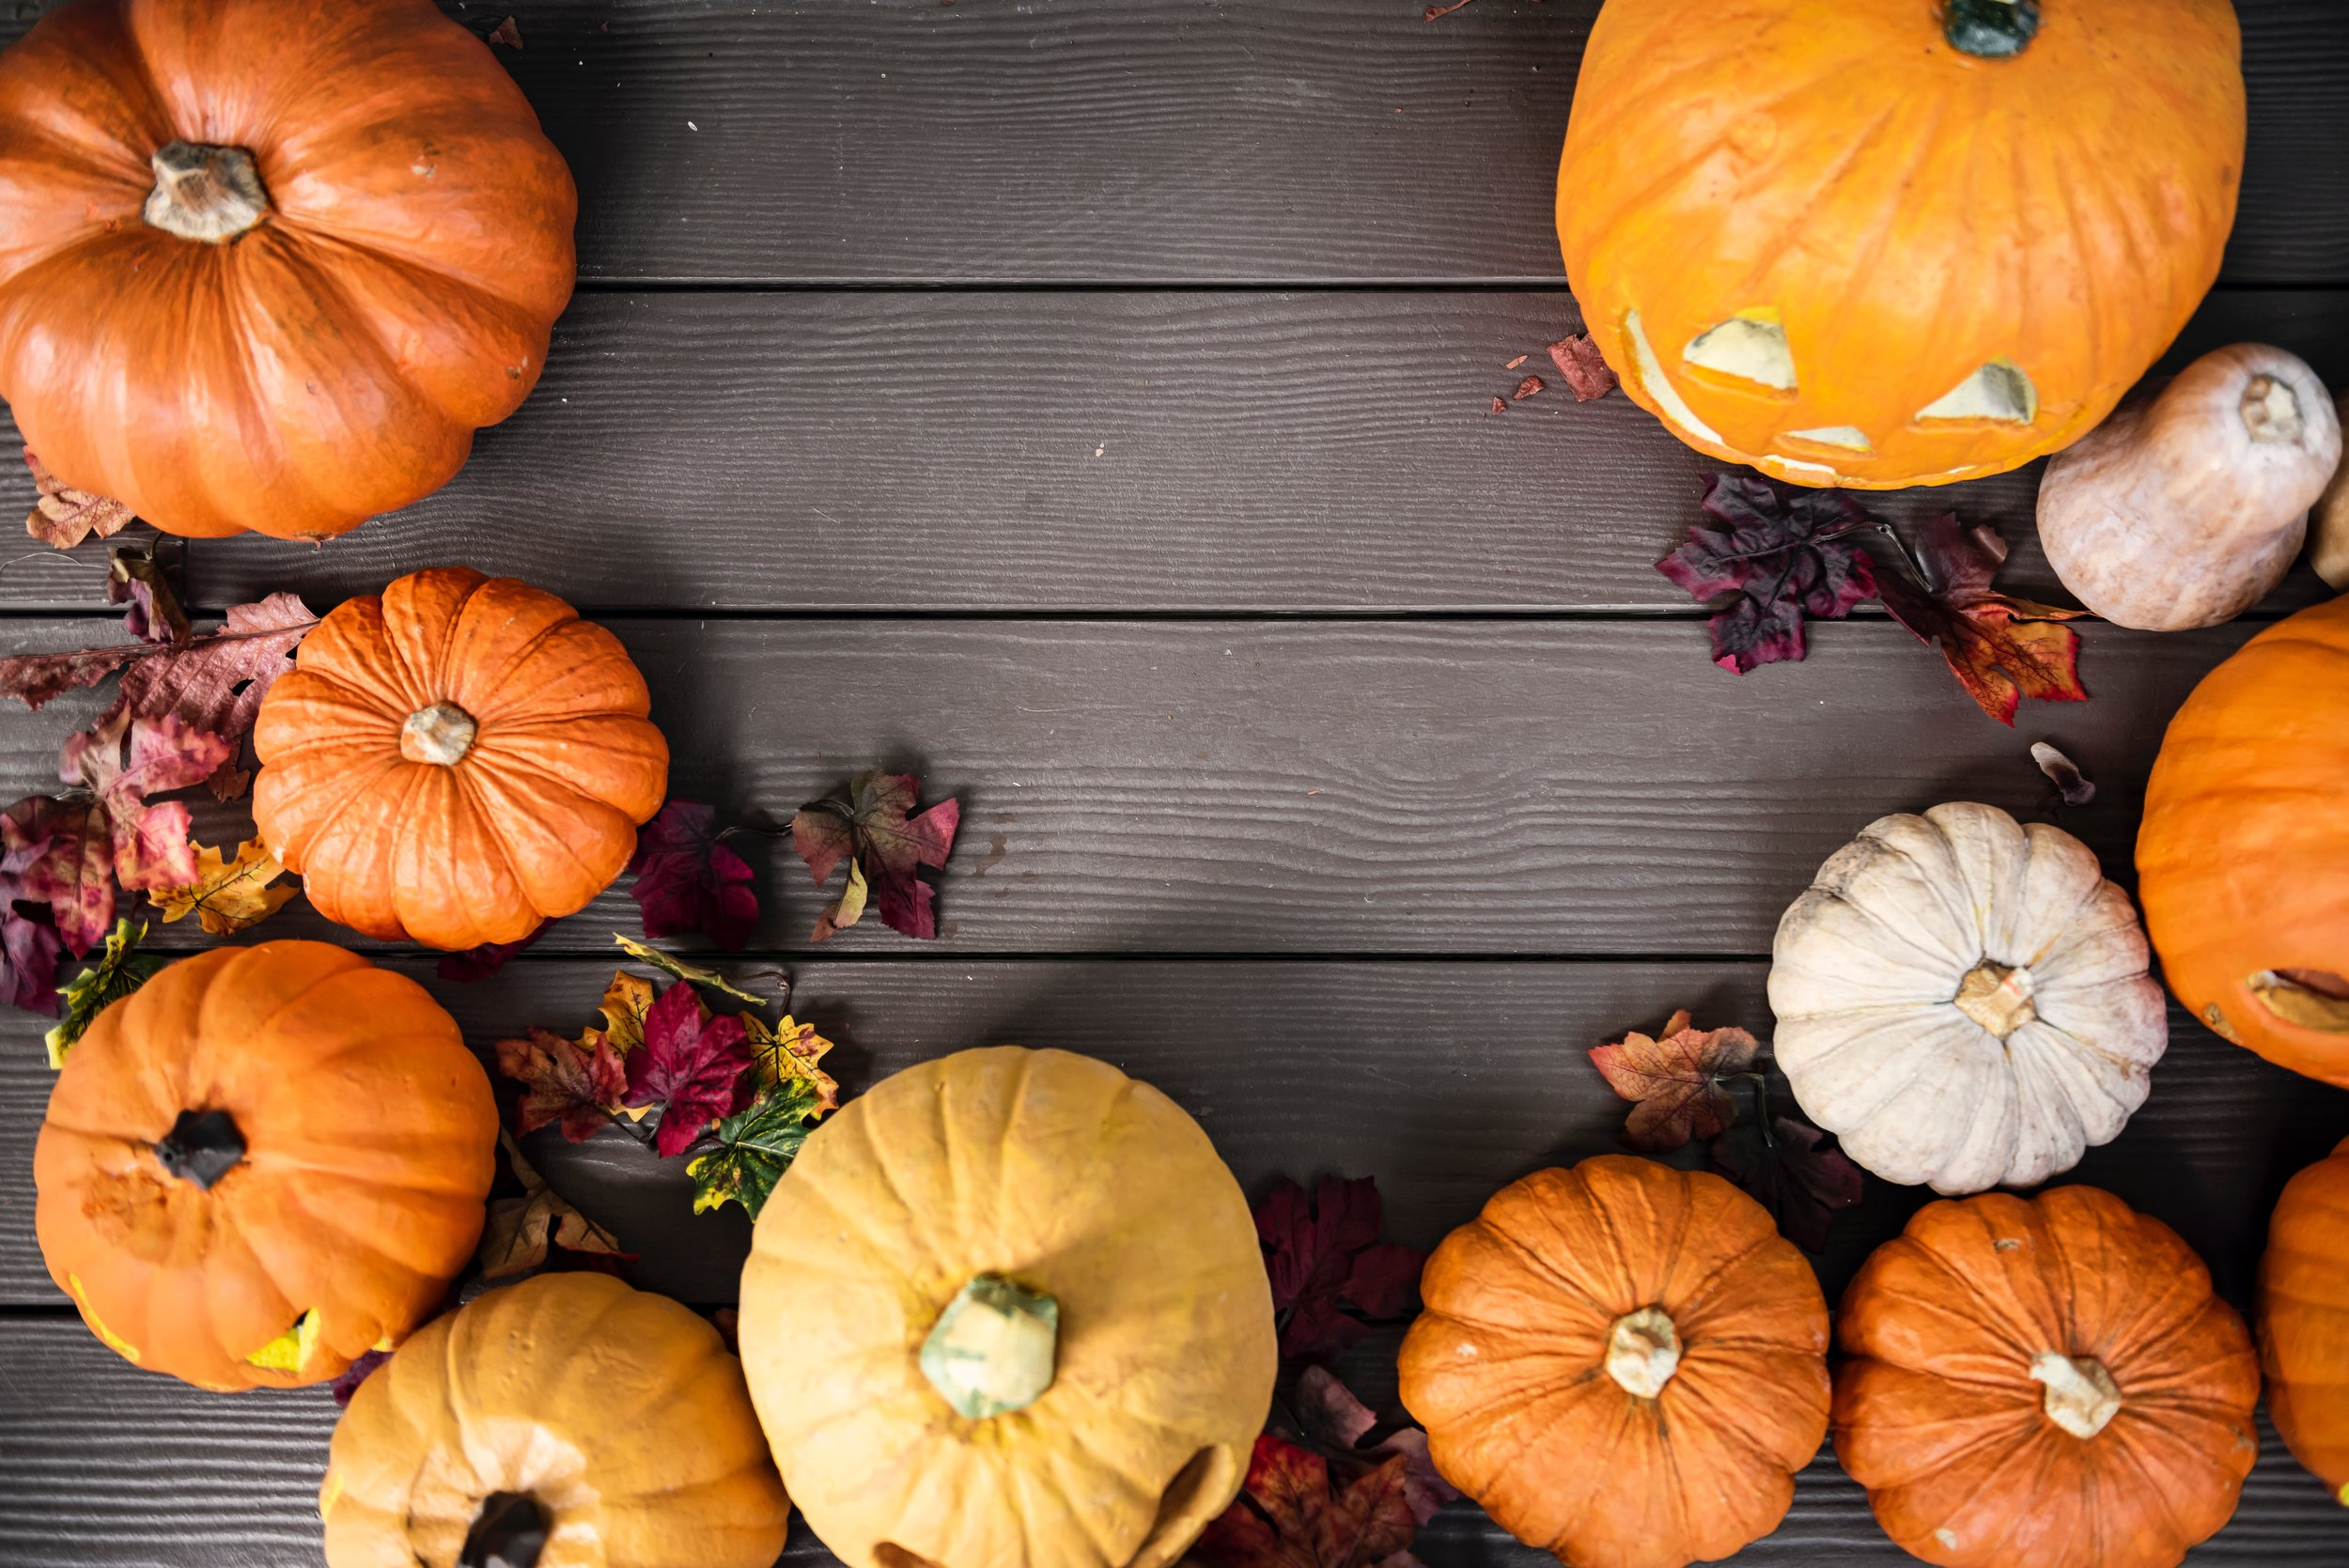 Pumpkins - Photo by rawpixel on Unsplash